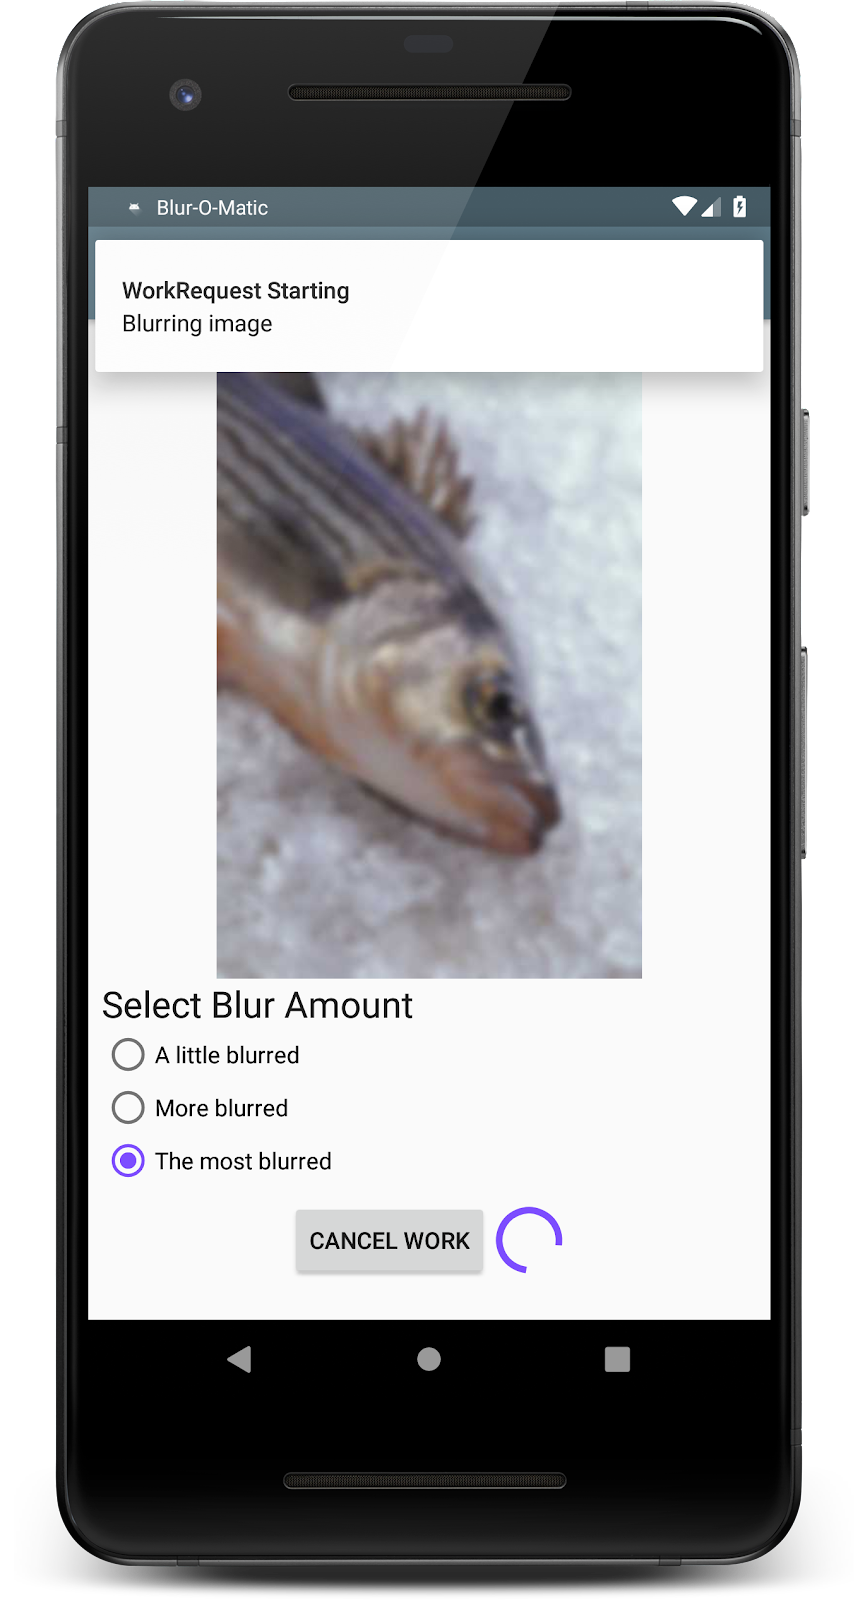 Image of app in the process of running a work request to blur the image seen on screen.